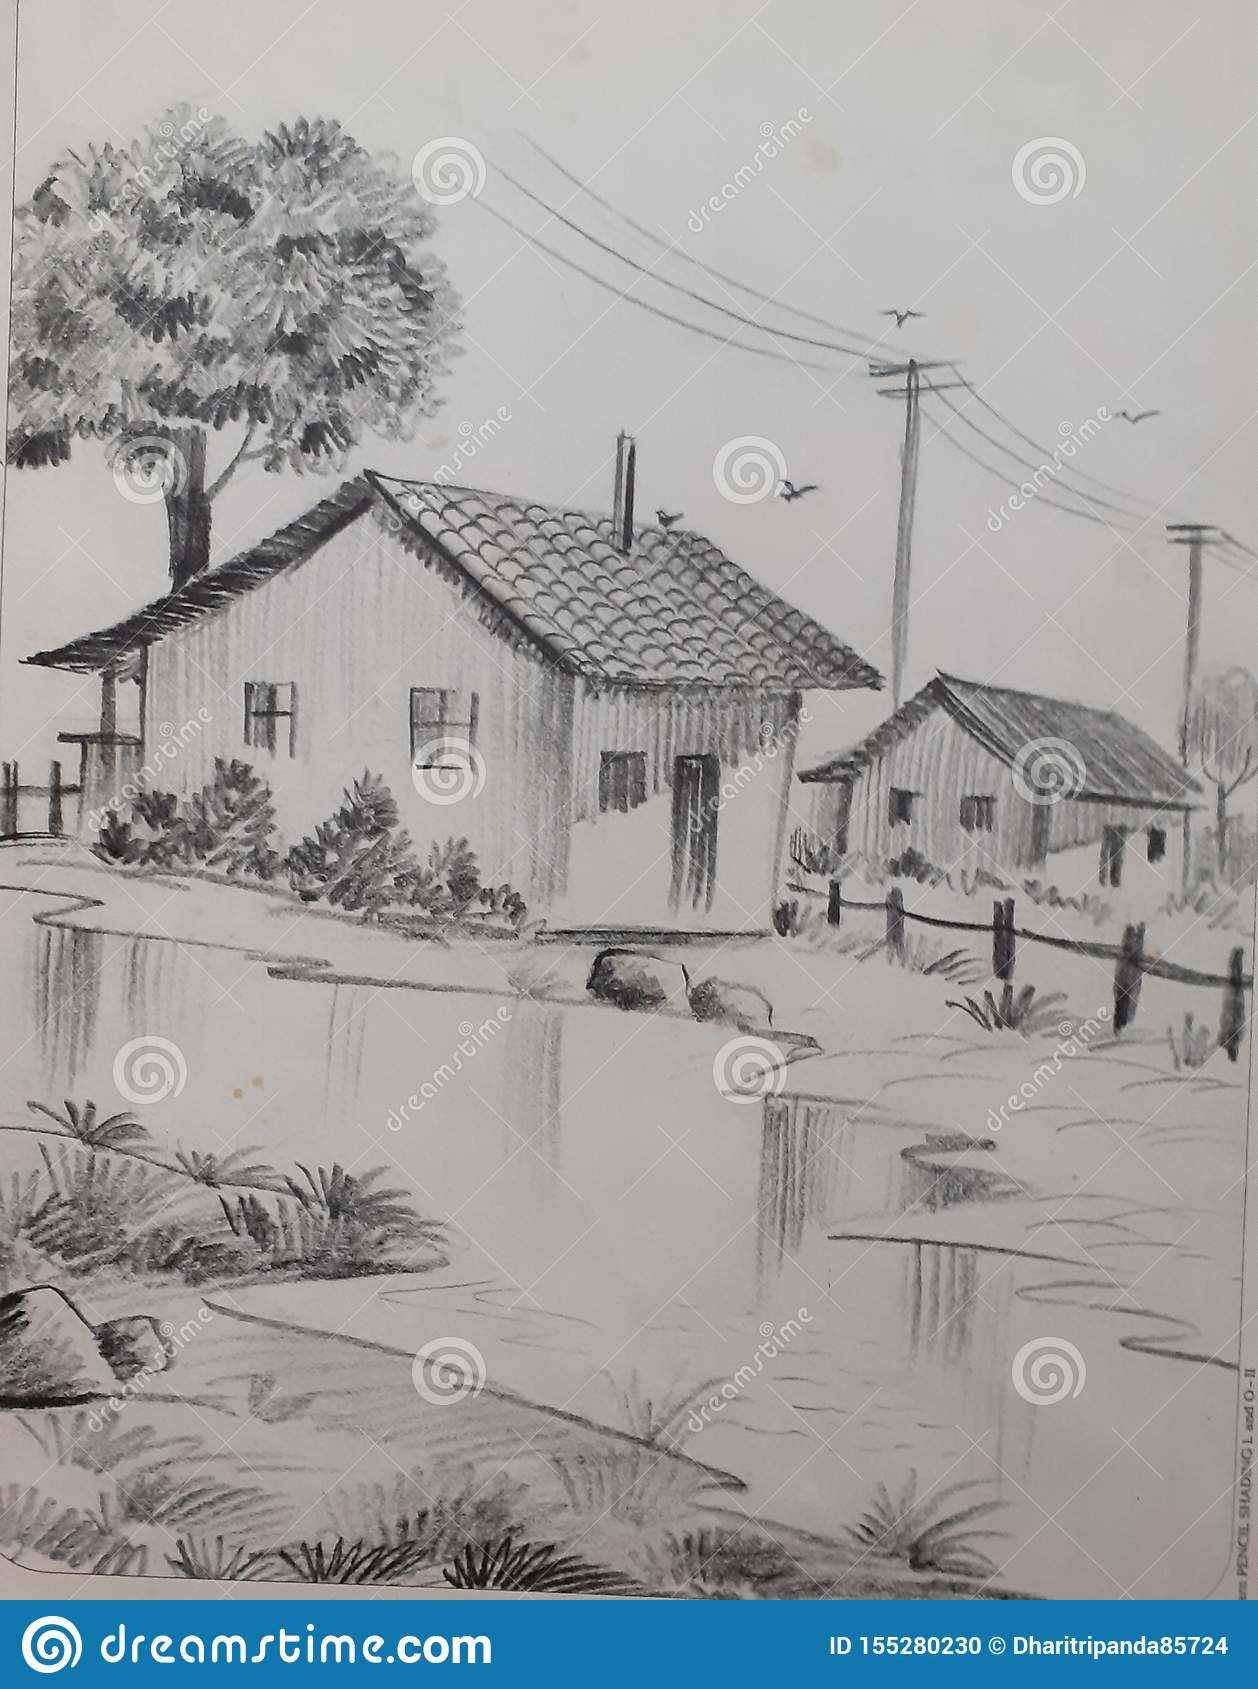 Landscape Pencil Shading Art This Is A Popular Way To Draw And Today This Article Will Show You How To Do It